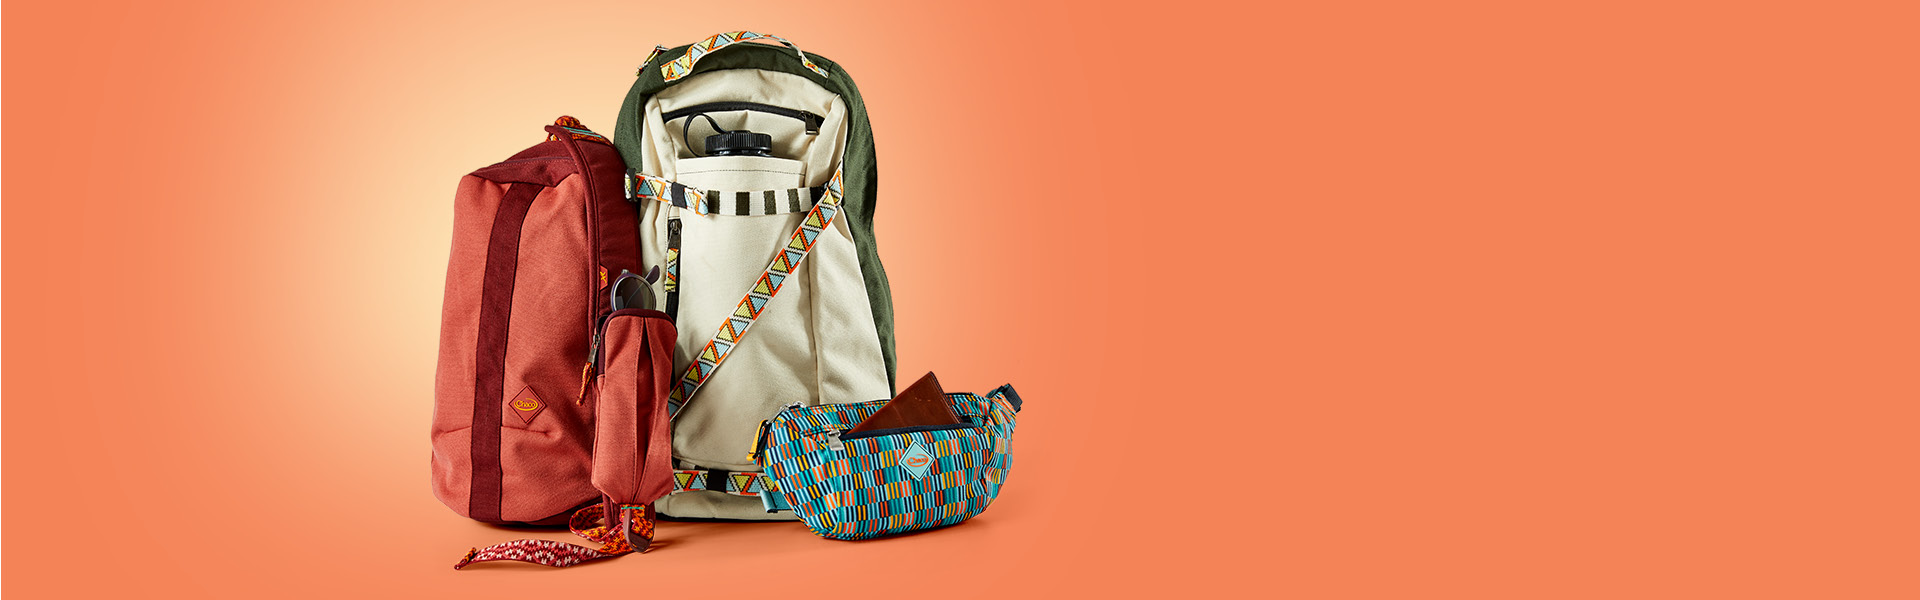 Radlands Packs and Chaco Sandals